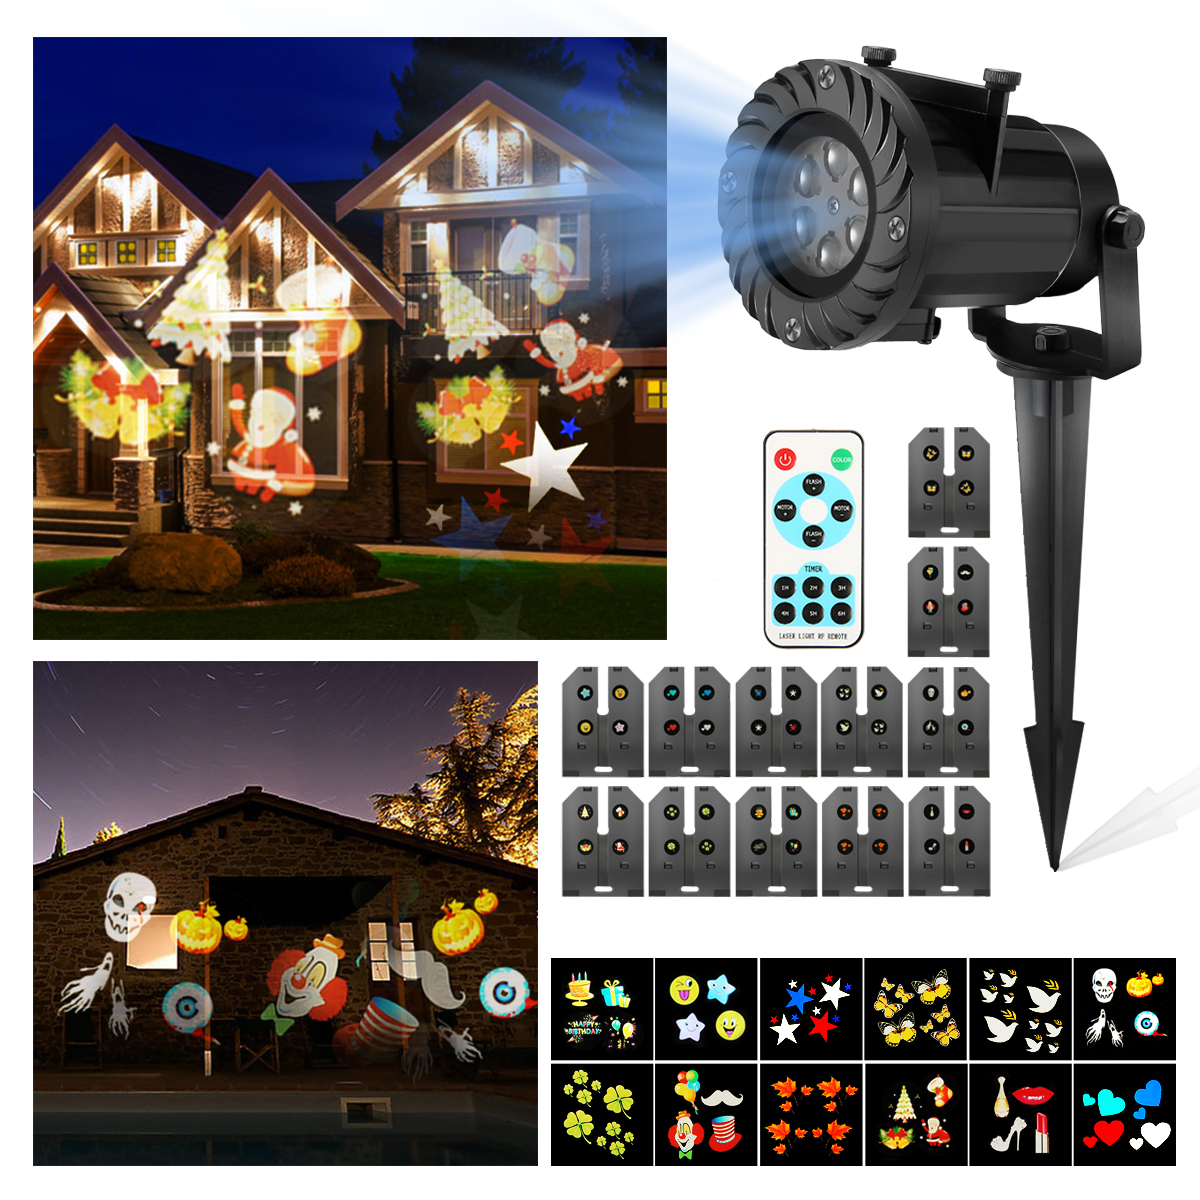 Christmas projector lights camtoa 12 pattern led light for Projecteur led exterieur noel